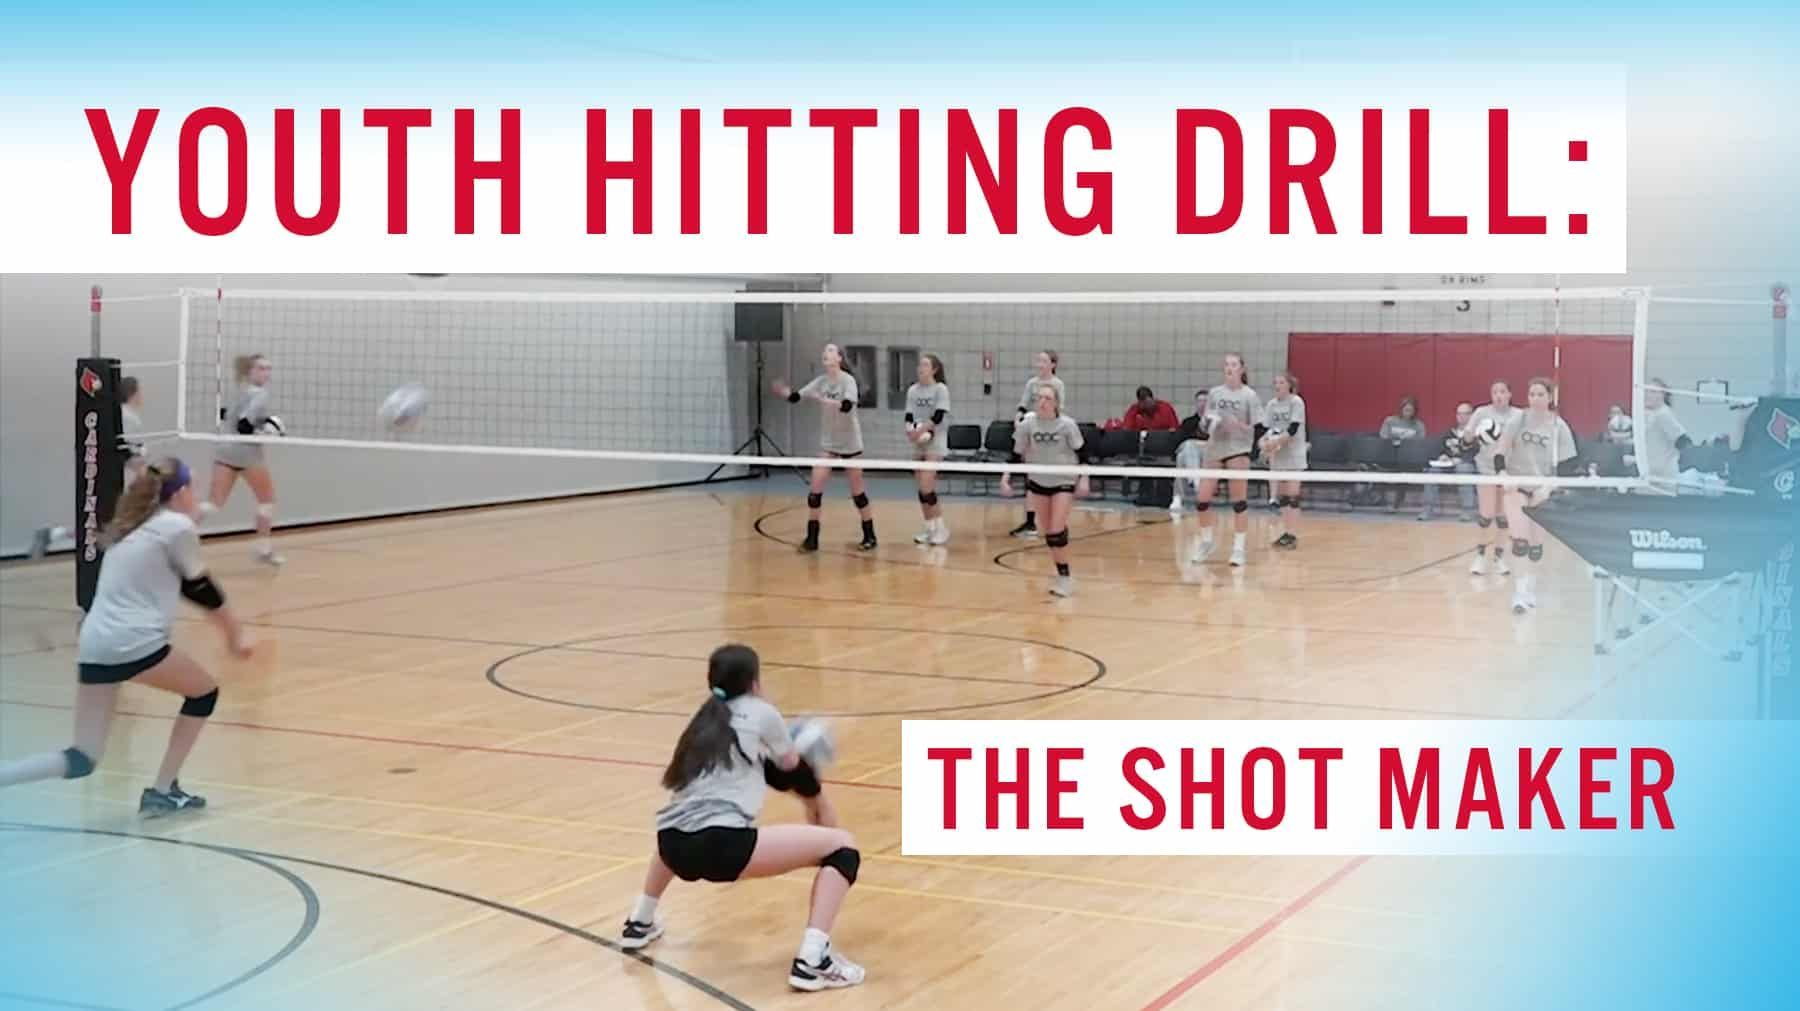 Youth Hitting Drill The Shot Maker The Art Of Coaching Volleyball Volleyball Skills Youth Volleyball Volleyball Training